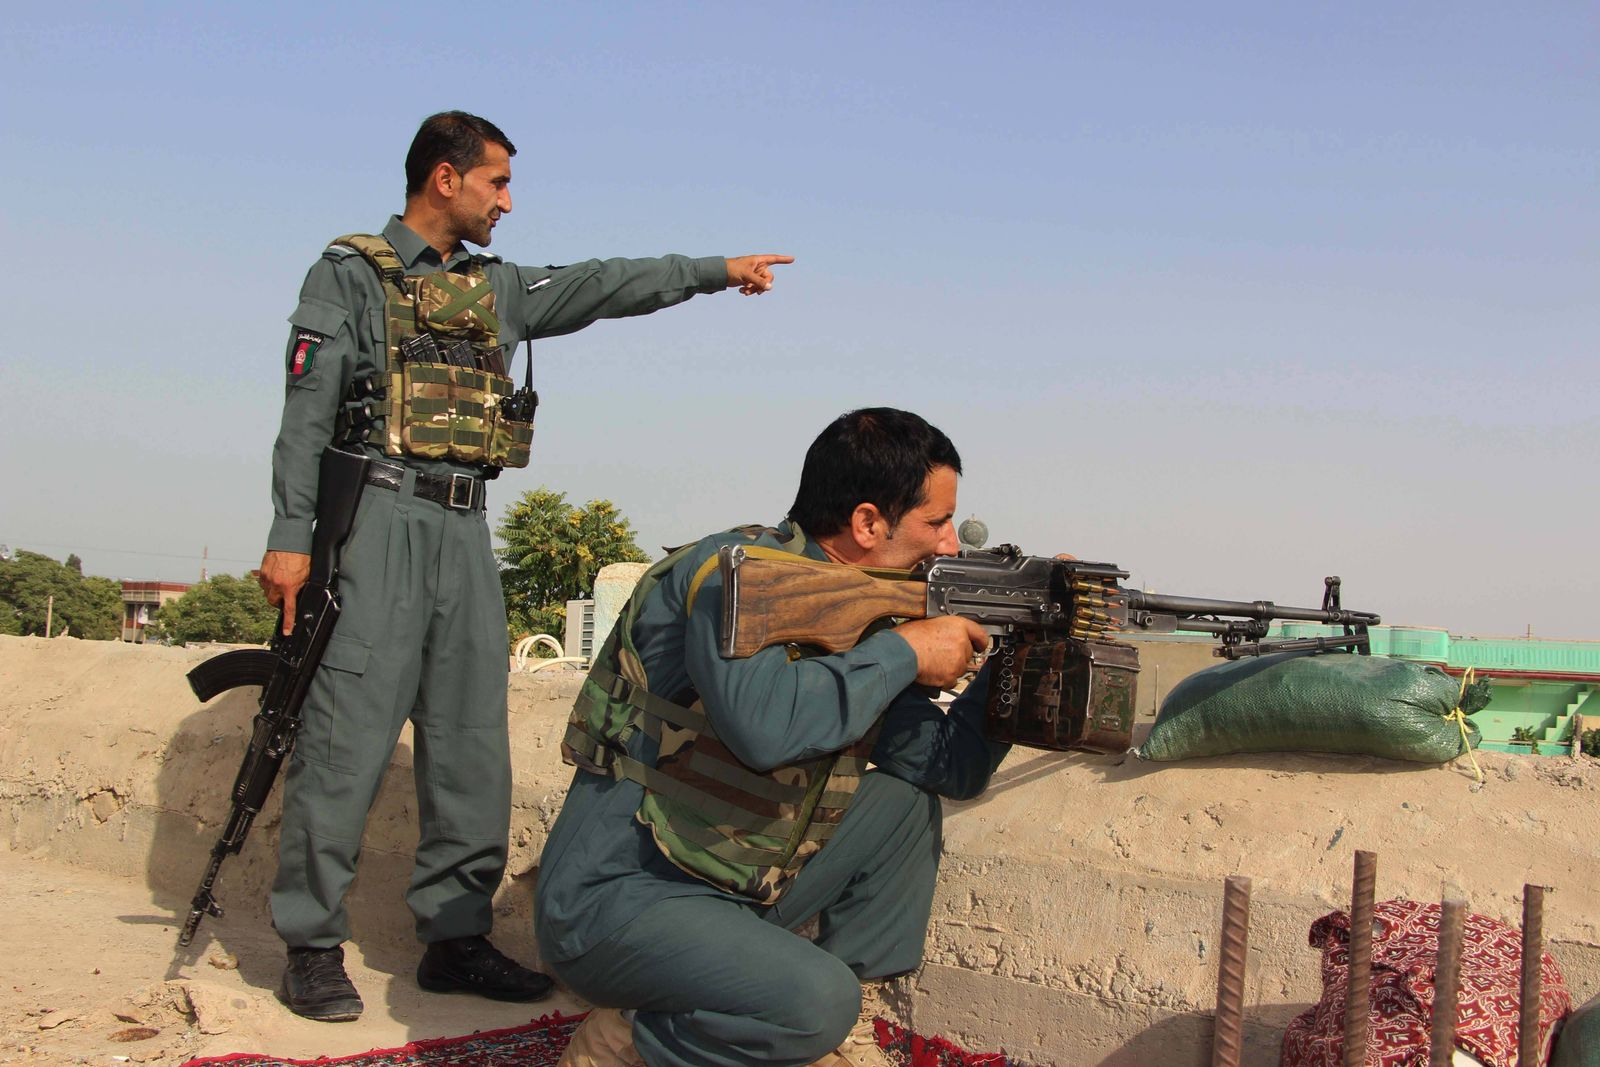 (210718) -- KUNDUZ, July 18, 2021 -- Afghan security force members take part in a military operation against Taliban mil